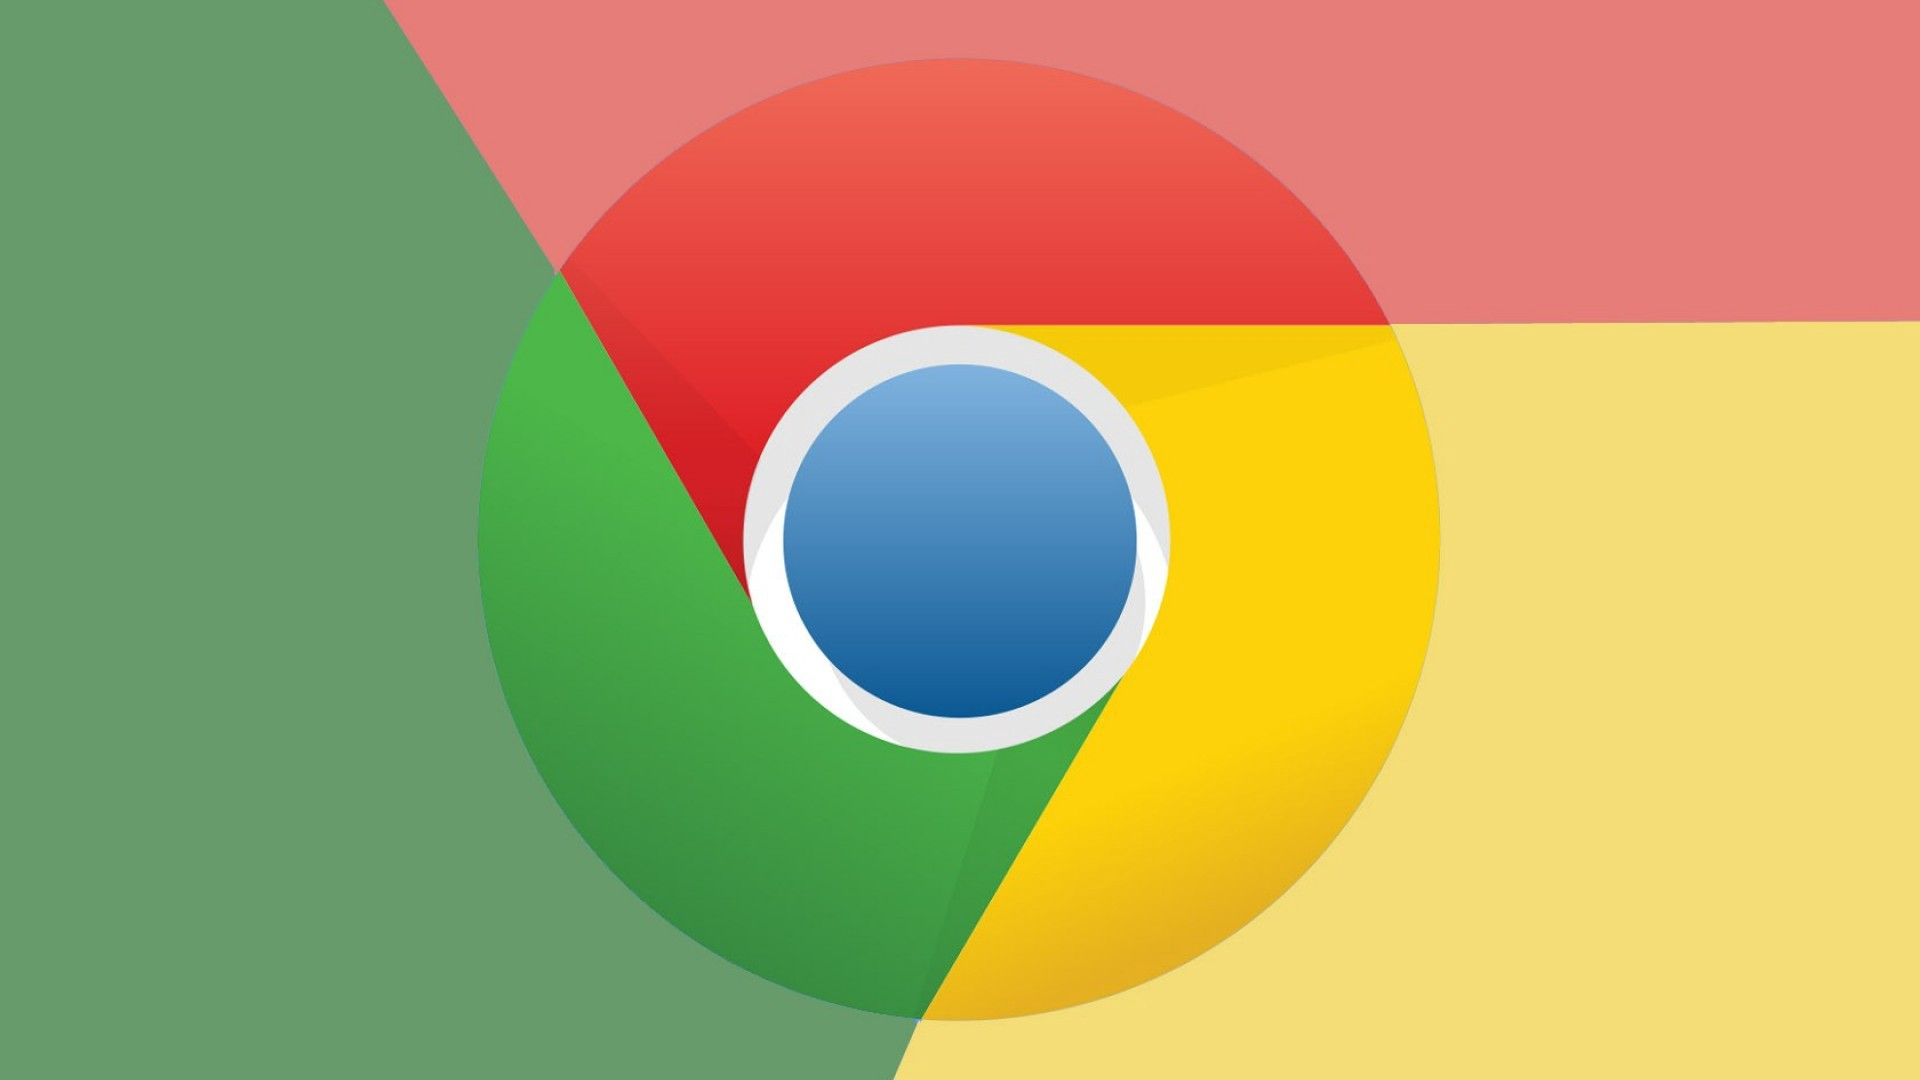 /lessons-from-my-2-chrome-plugins-1cabea2b8e06 feature image